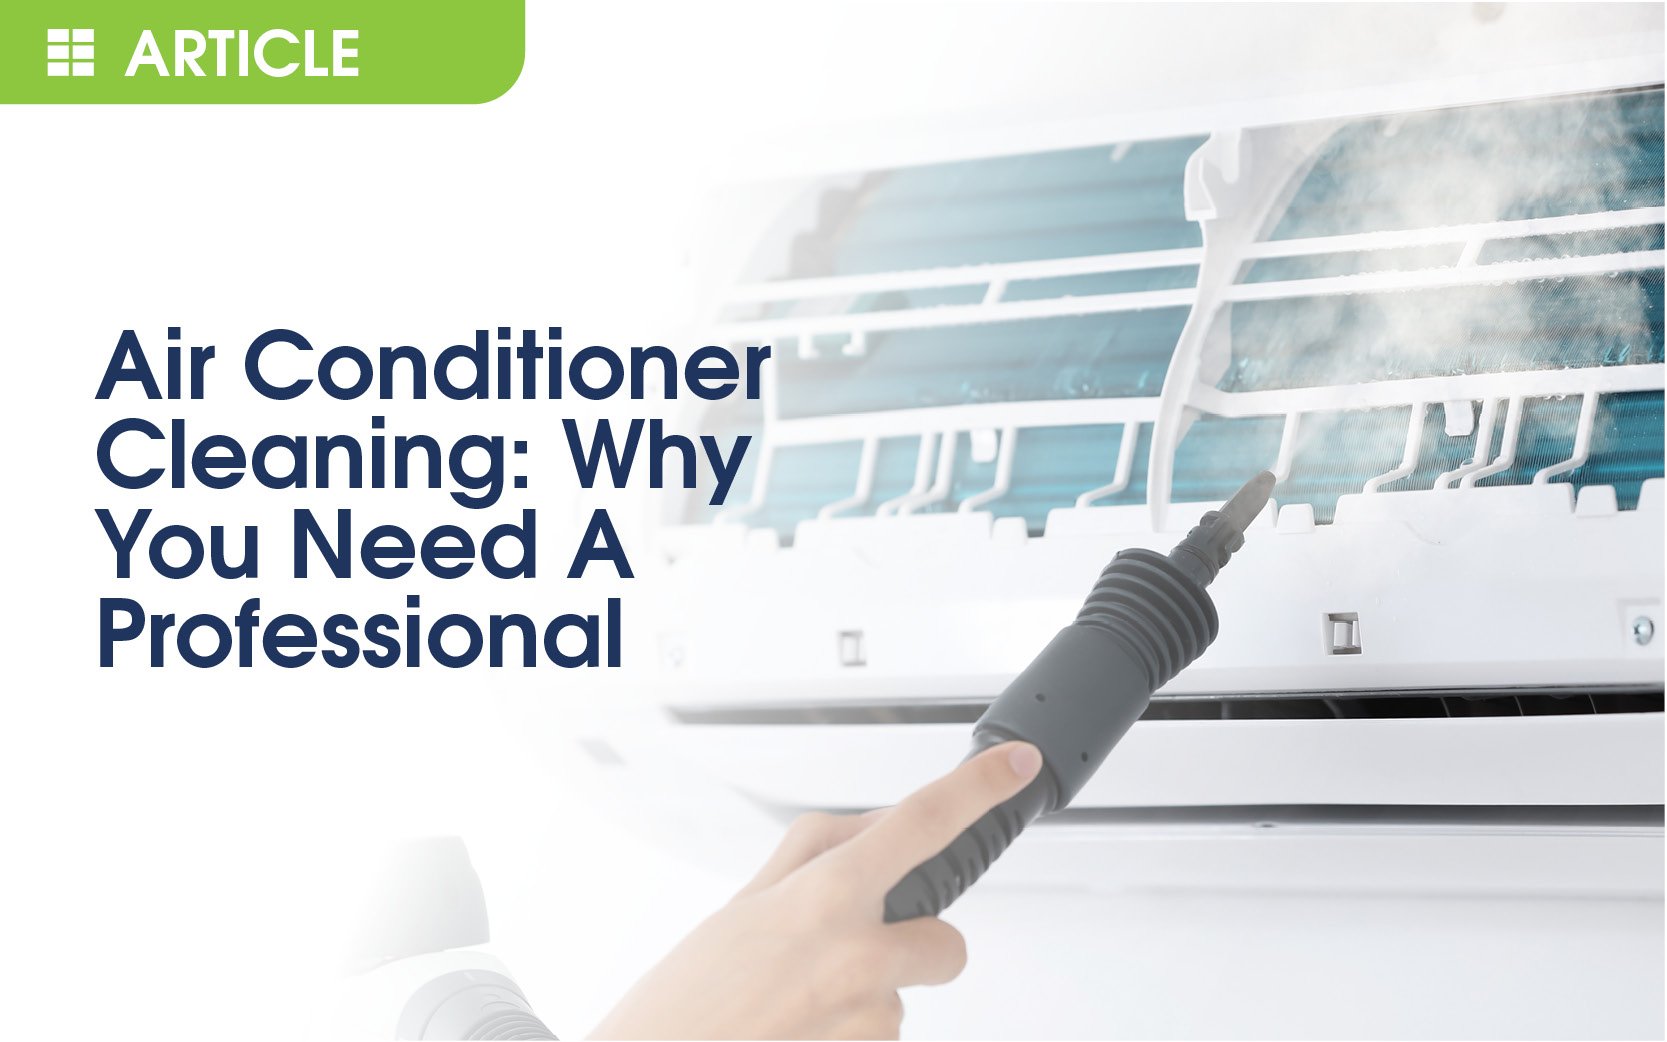 5 Reasons to Have Your Air Conditioner Professionally Serviced